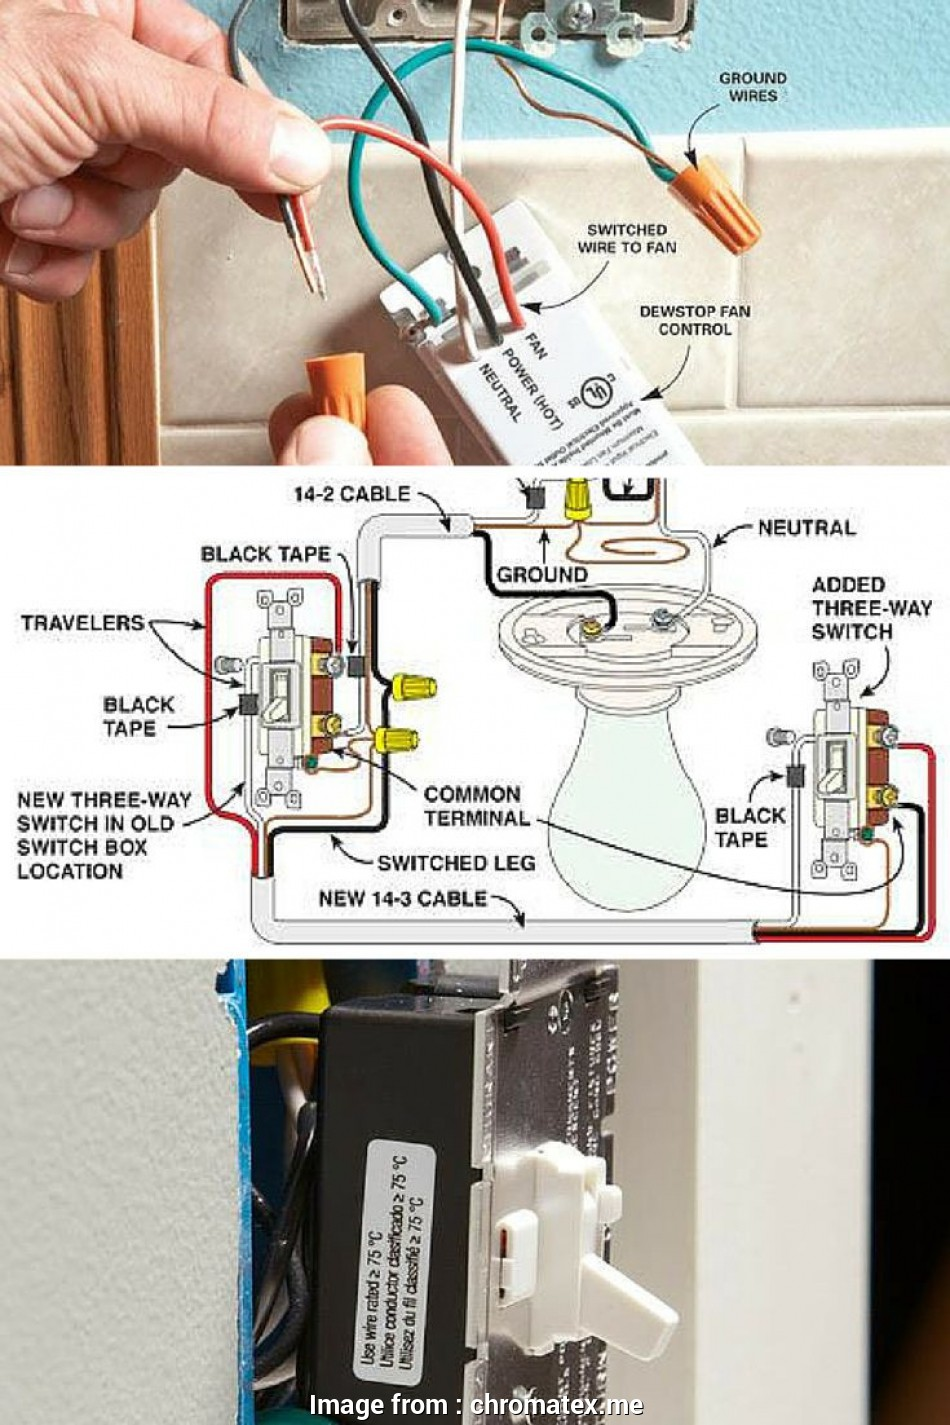 hight resolution of 3 way switch wiring old house 377 best electrical images on pinterest projects incredible house